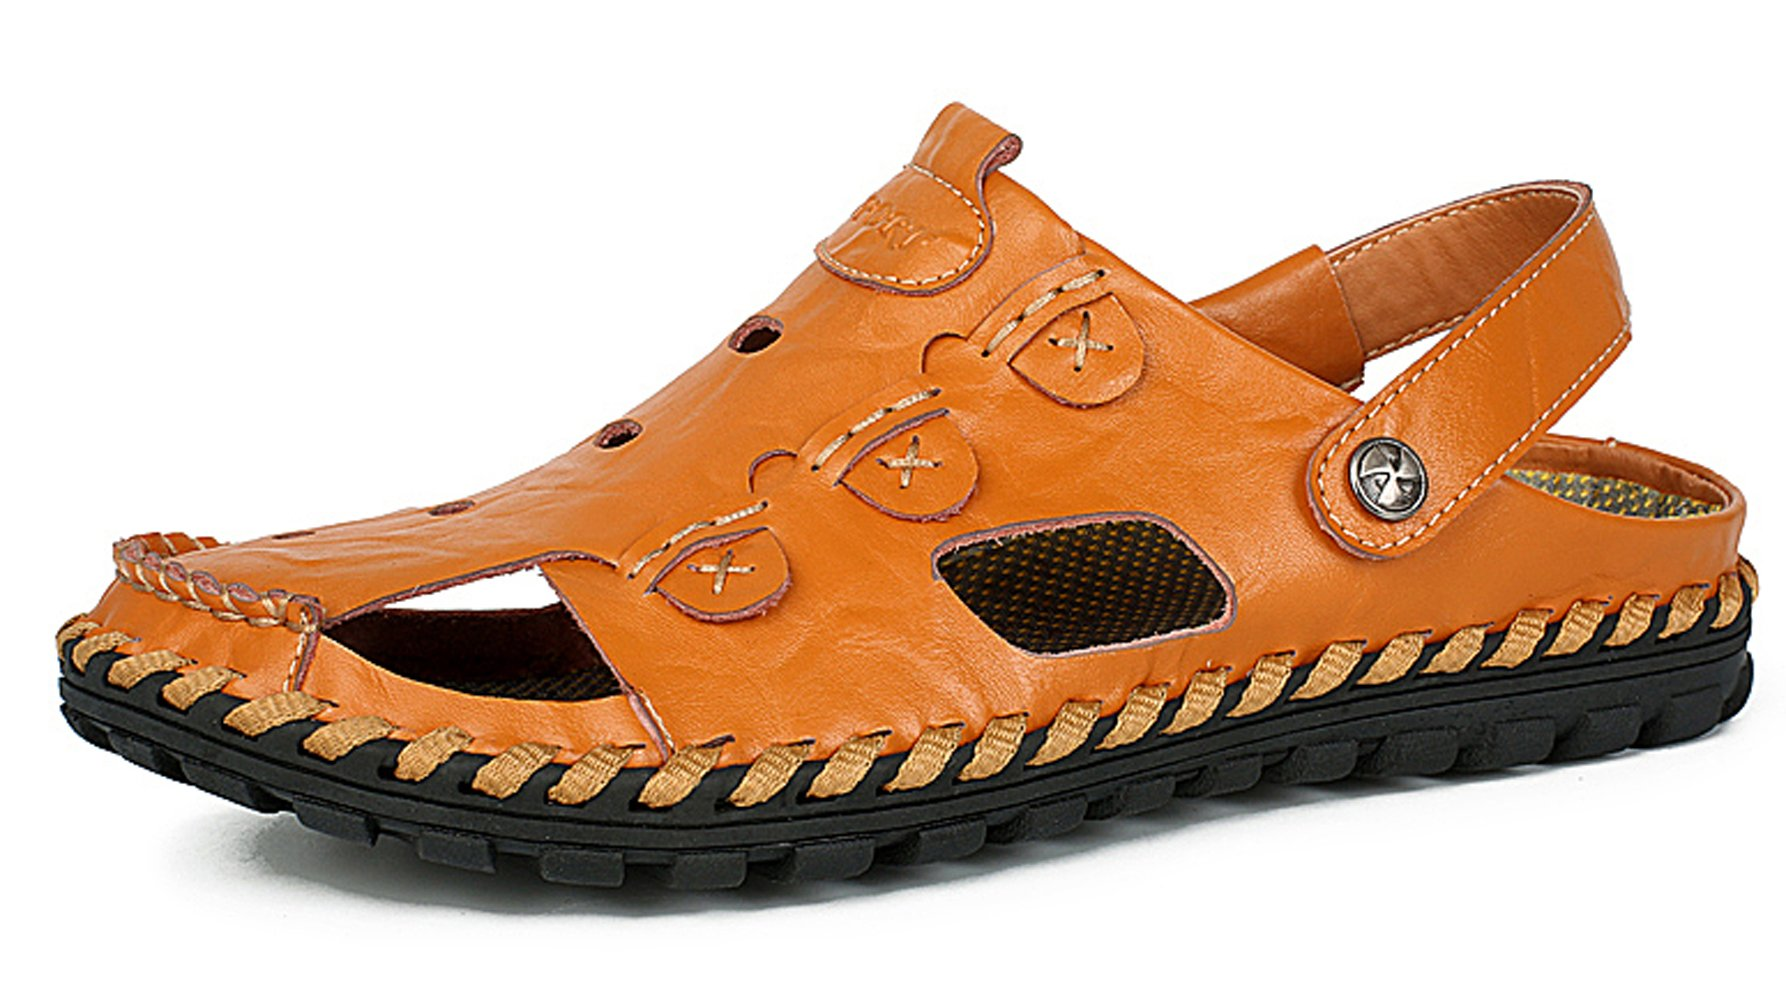 YZHYXS Leather Slippers for Men 2018 Summer Beach Flat Sandals Breathable Comfort Walking Shoes Size 9 (9528orange43)